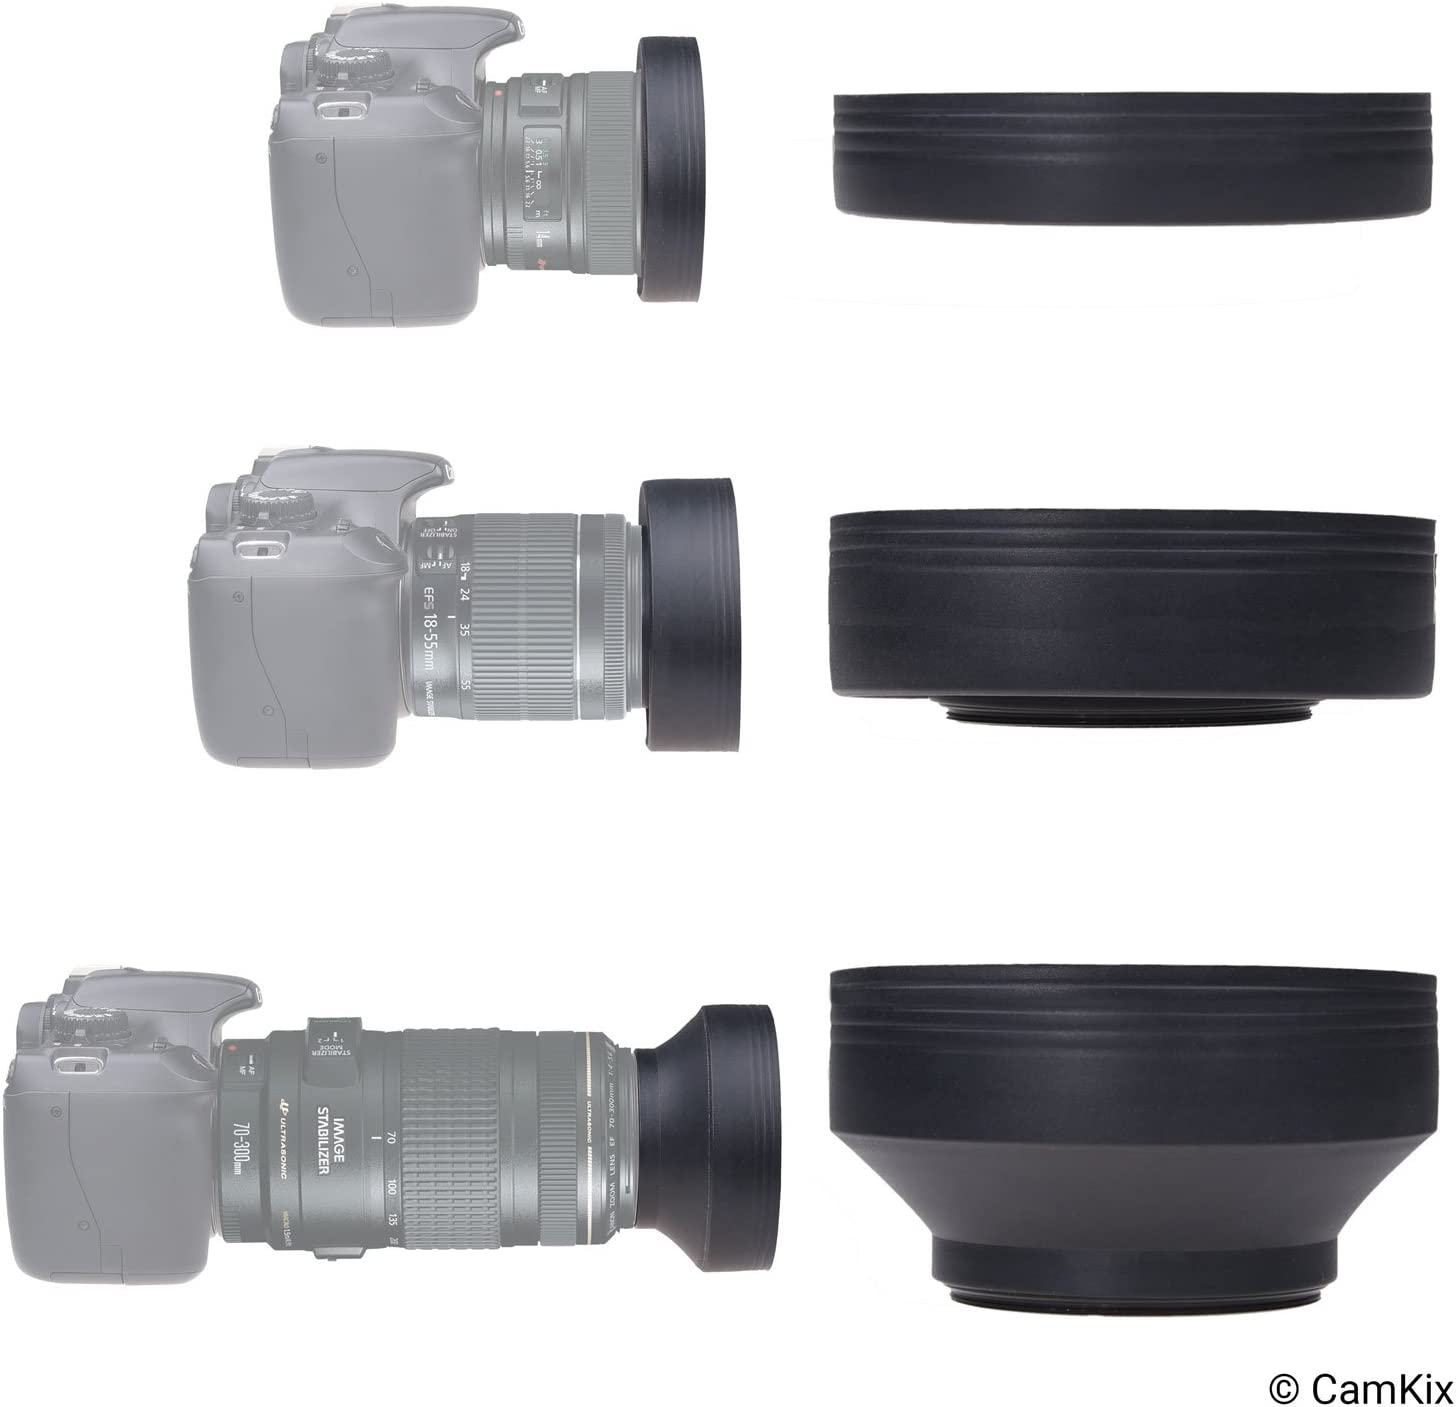 Collapsible in 3 Steps Set of 2 Sun Shade//Shield Camera Lens Hood 52mm Reduces Lens Flare and Glare Blocks Excess Sunlight for Enhanced Photography and Video Footage Rubber